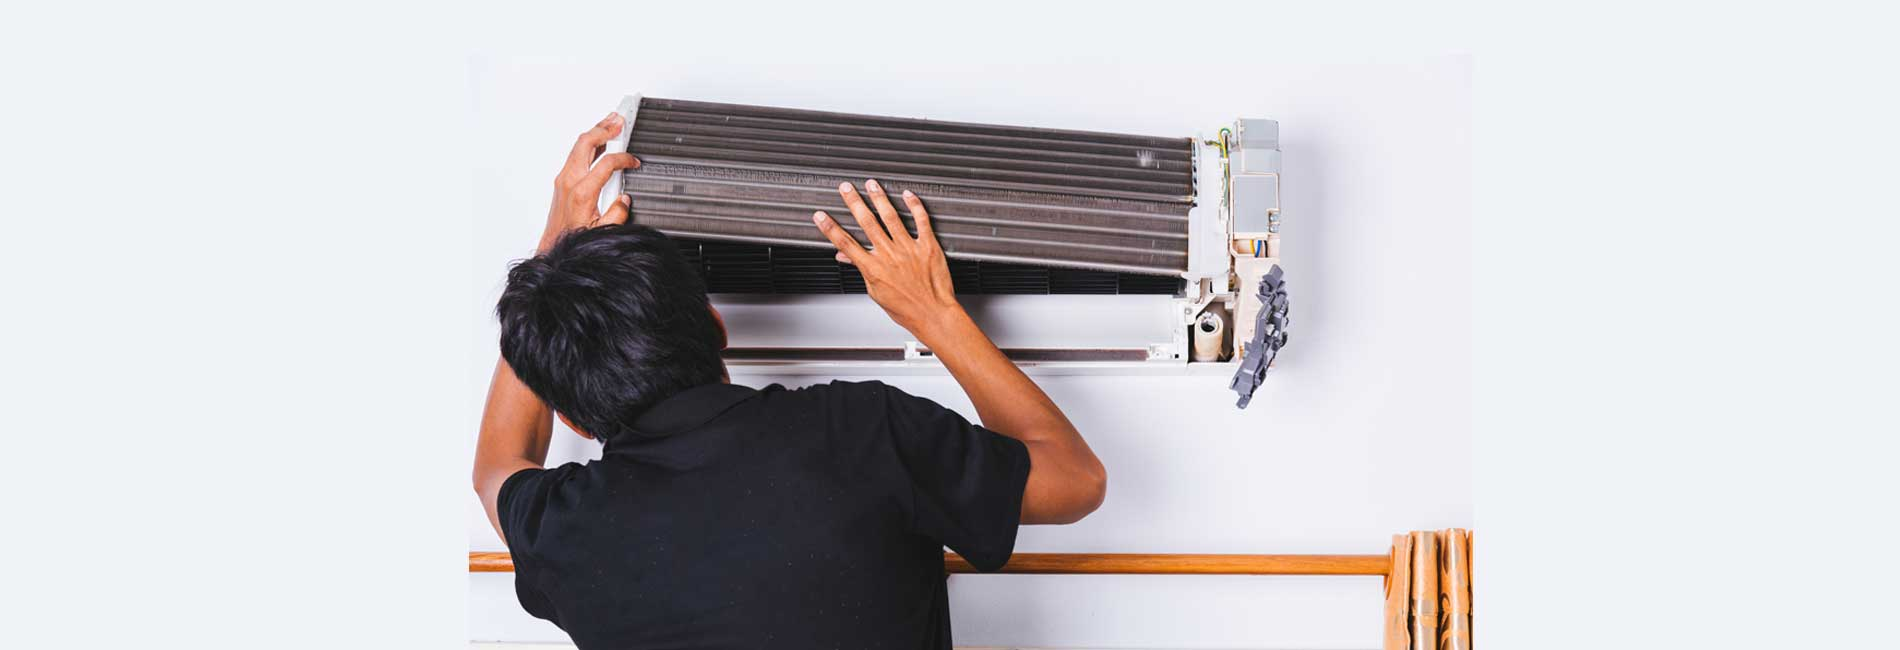 Split AC Uninstallation in R.A Puram